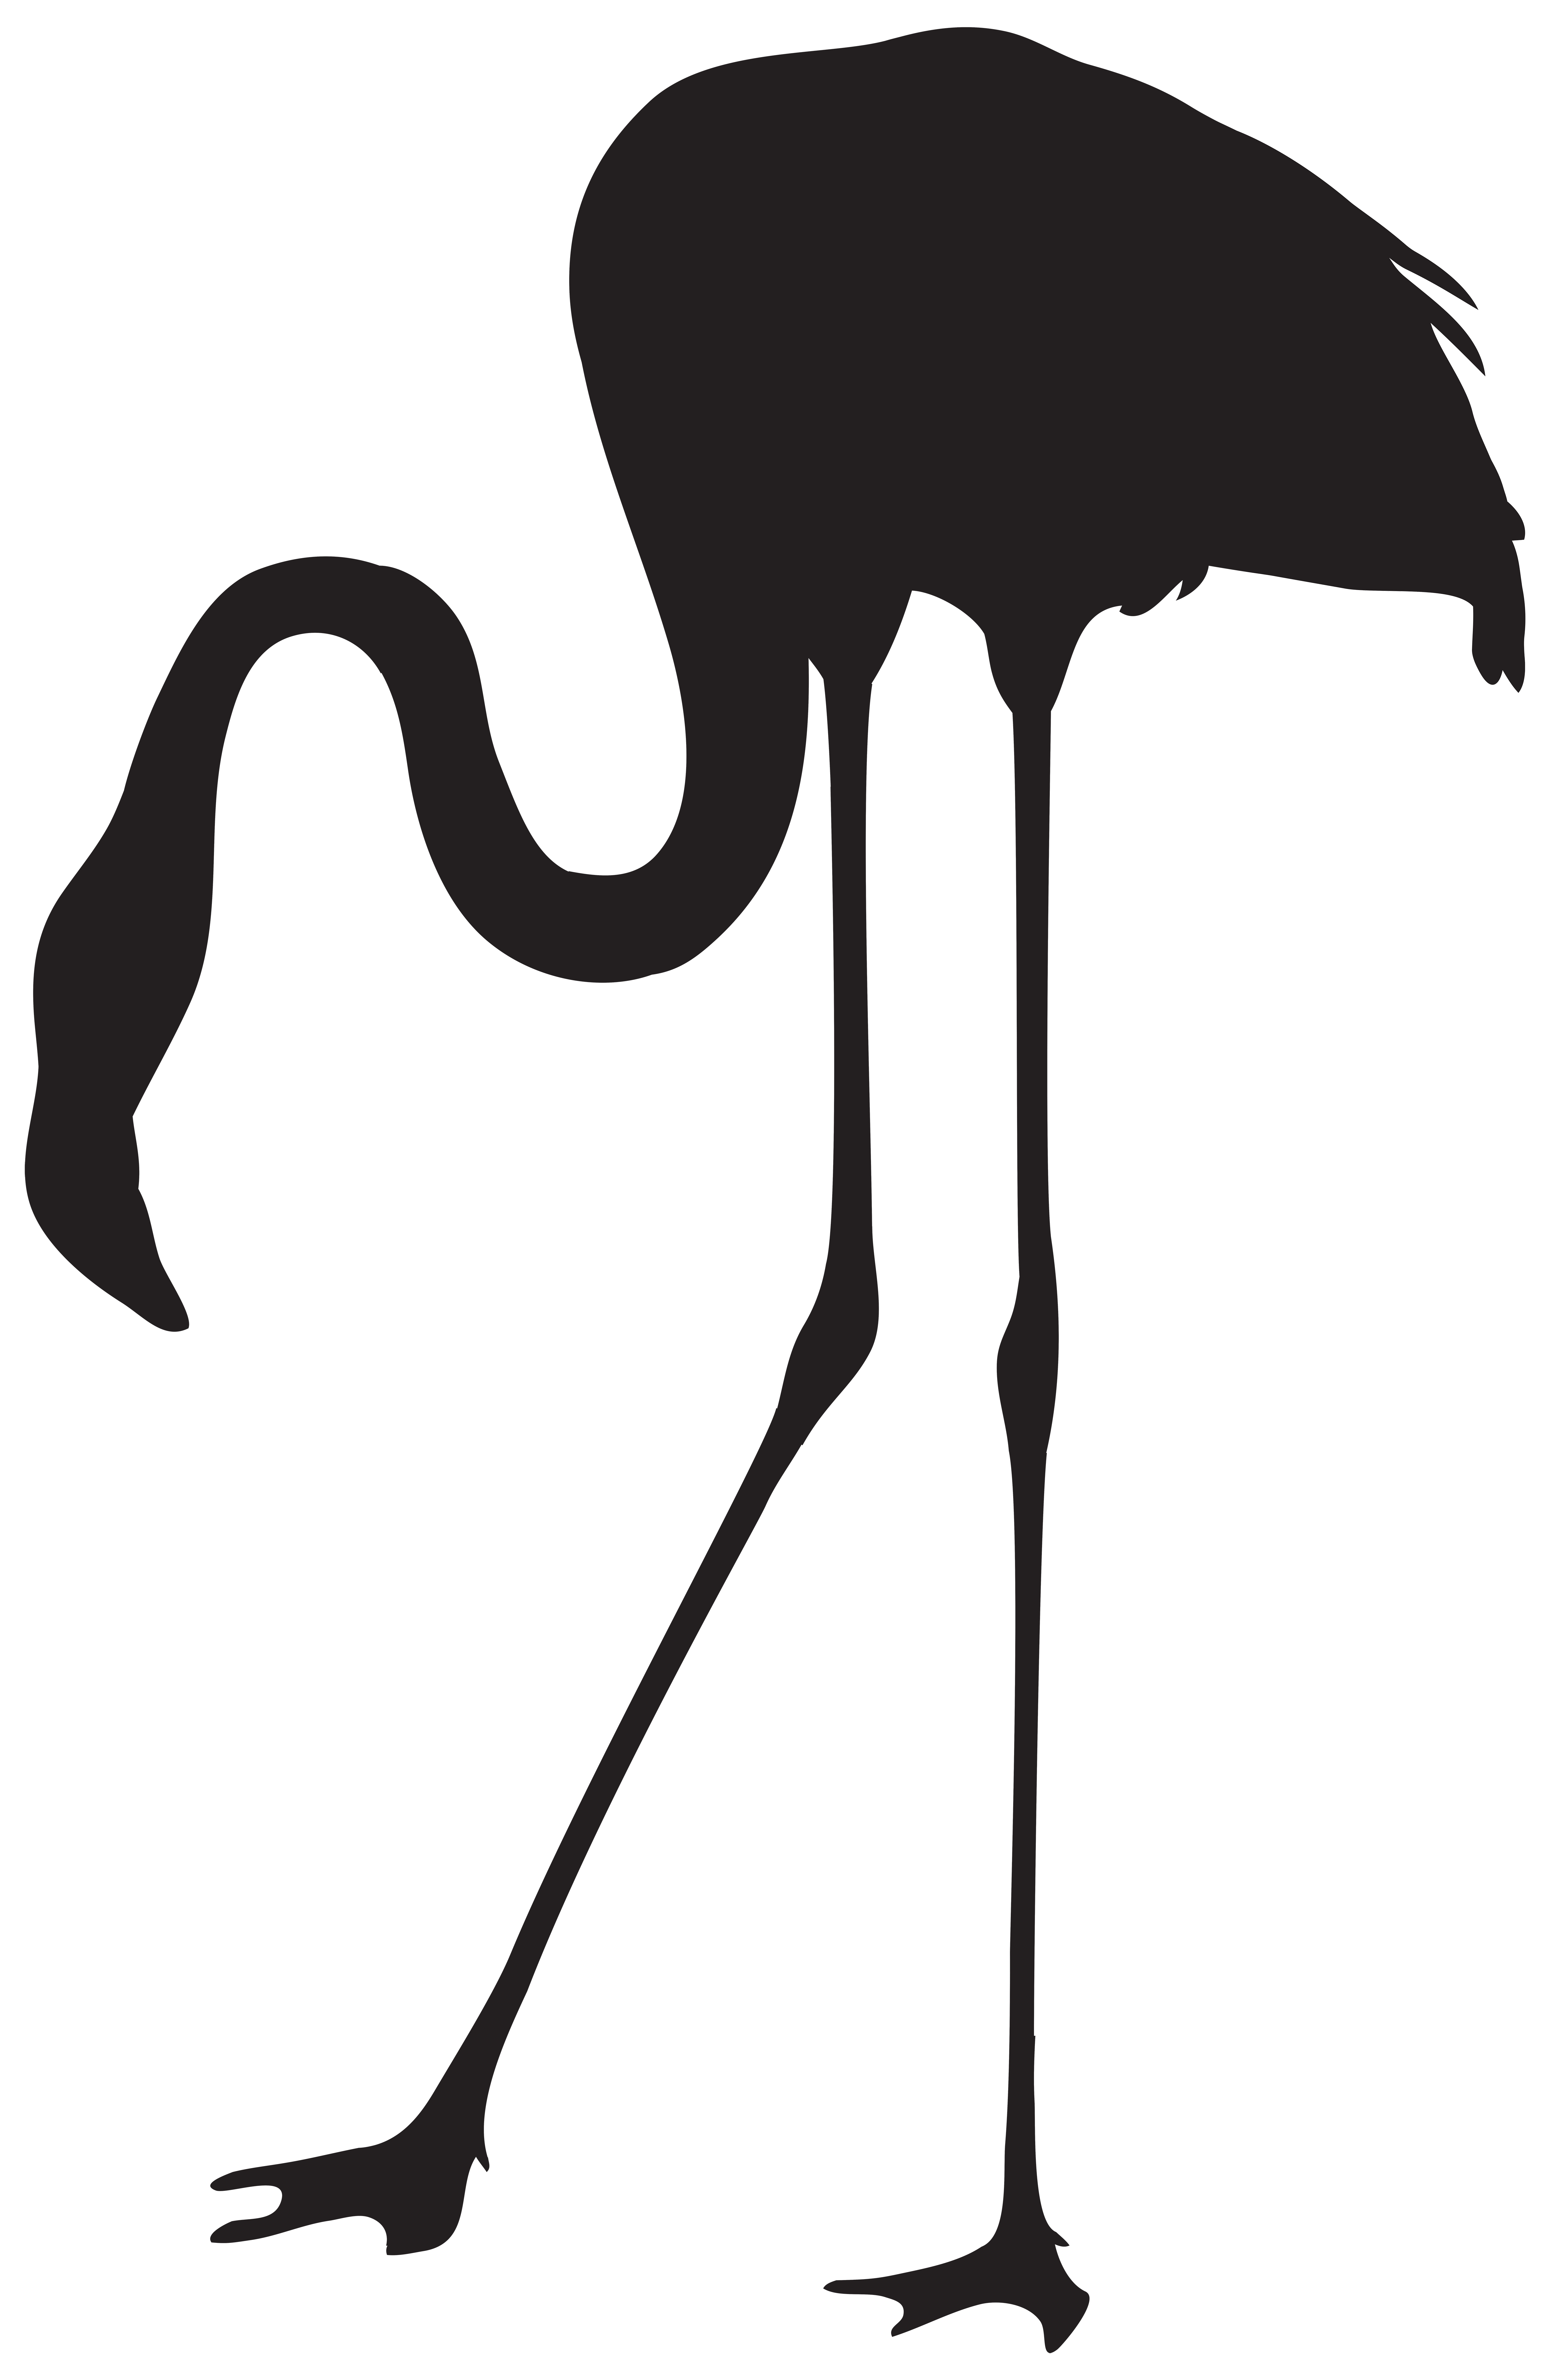 ostrich silhouette at getdrawings com free for personal use rh getdrawings com ostrich clipart free ostrich clipart picture